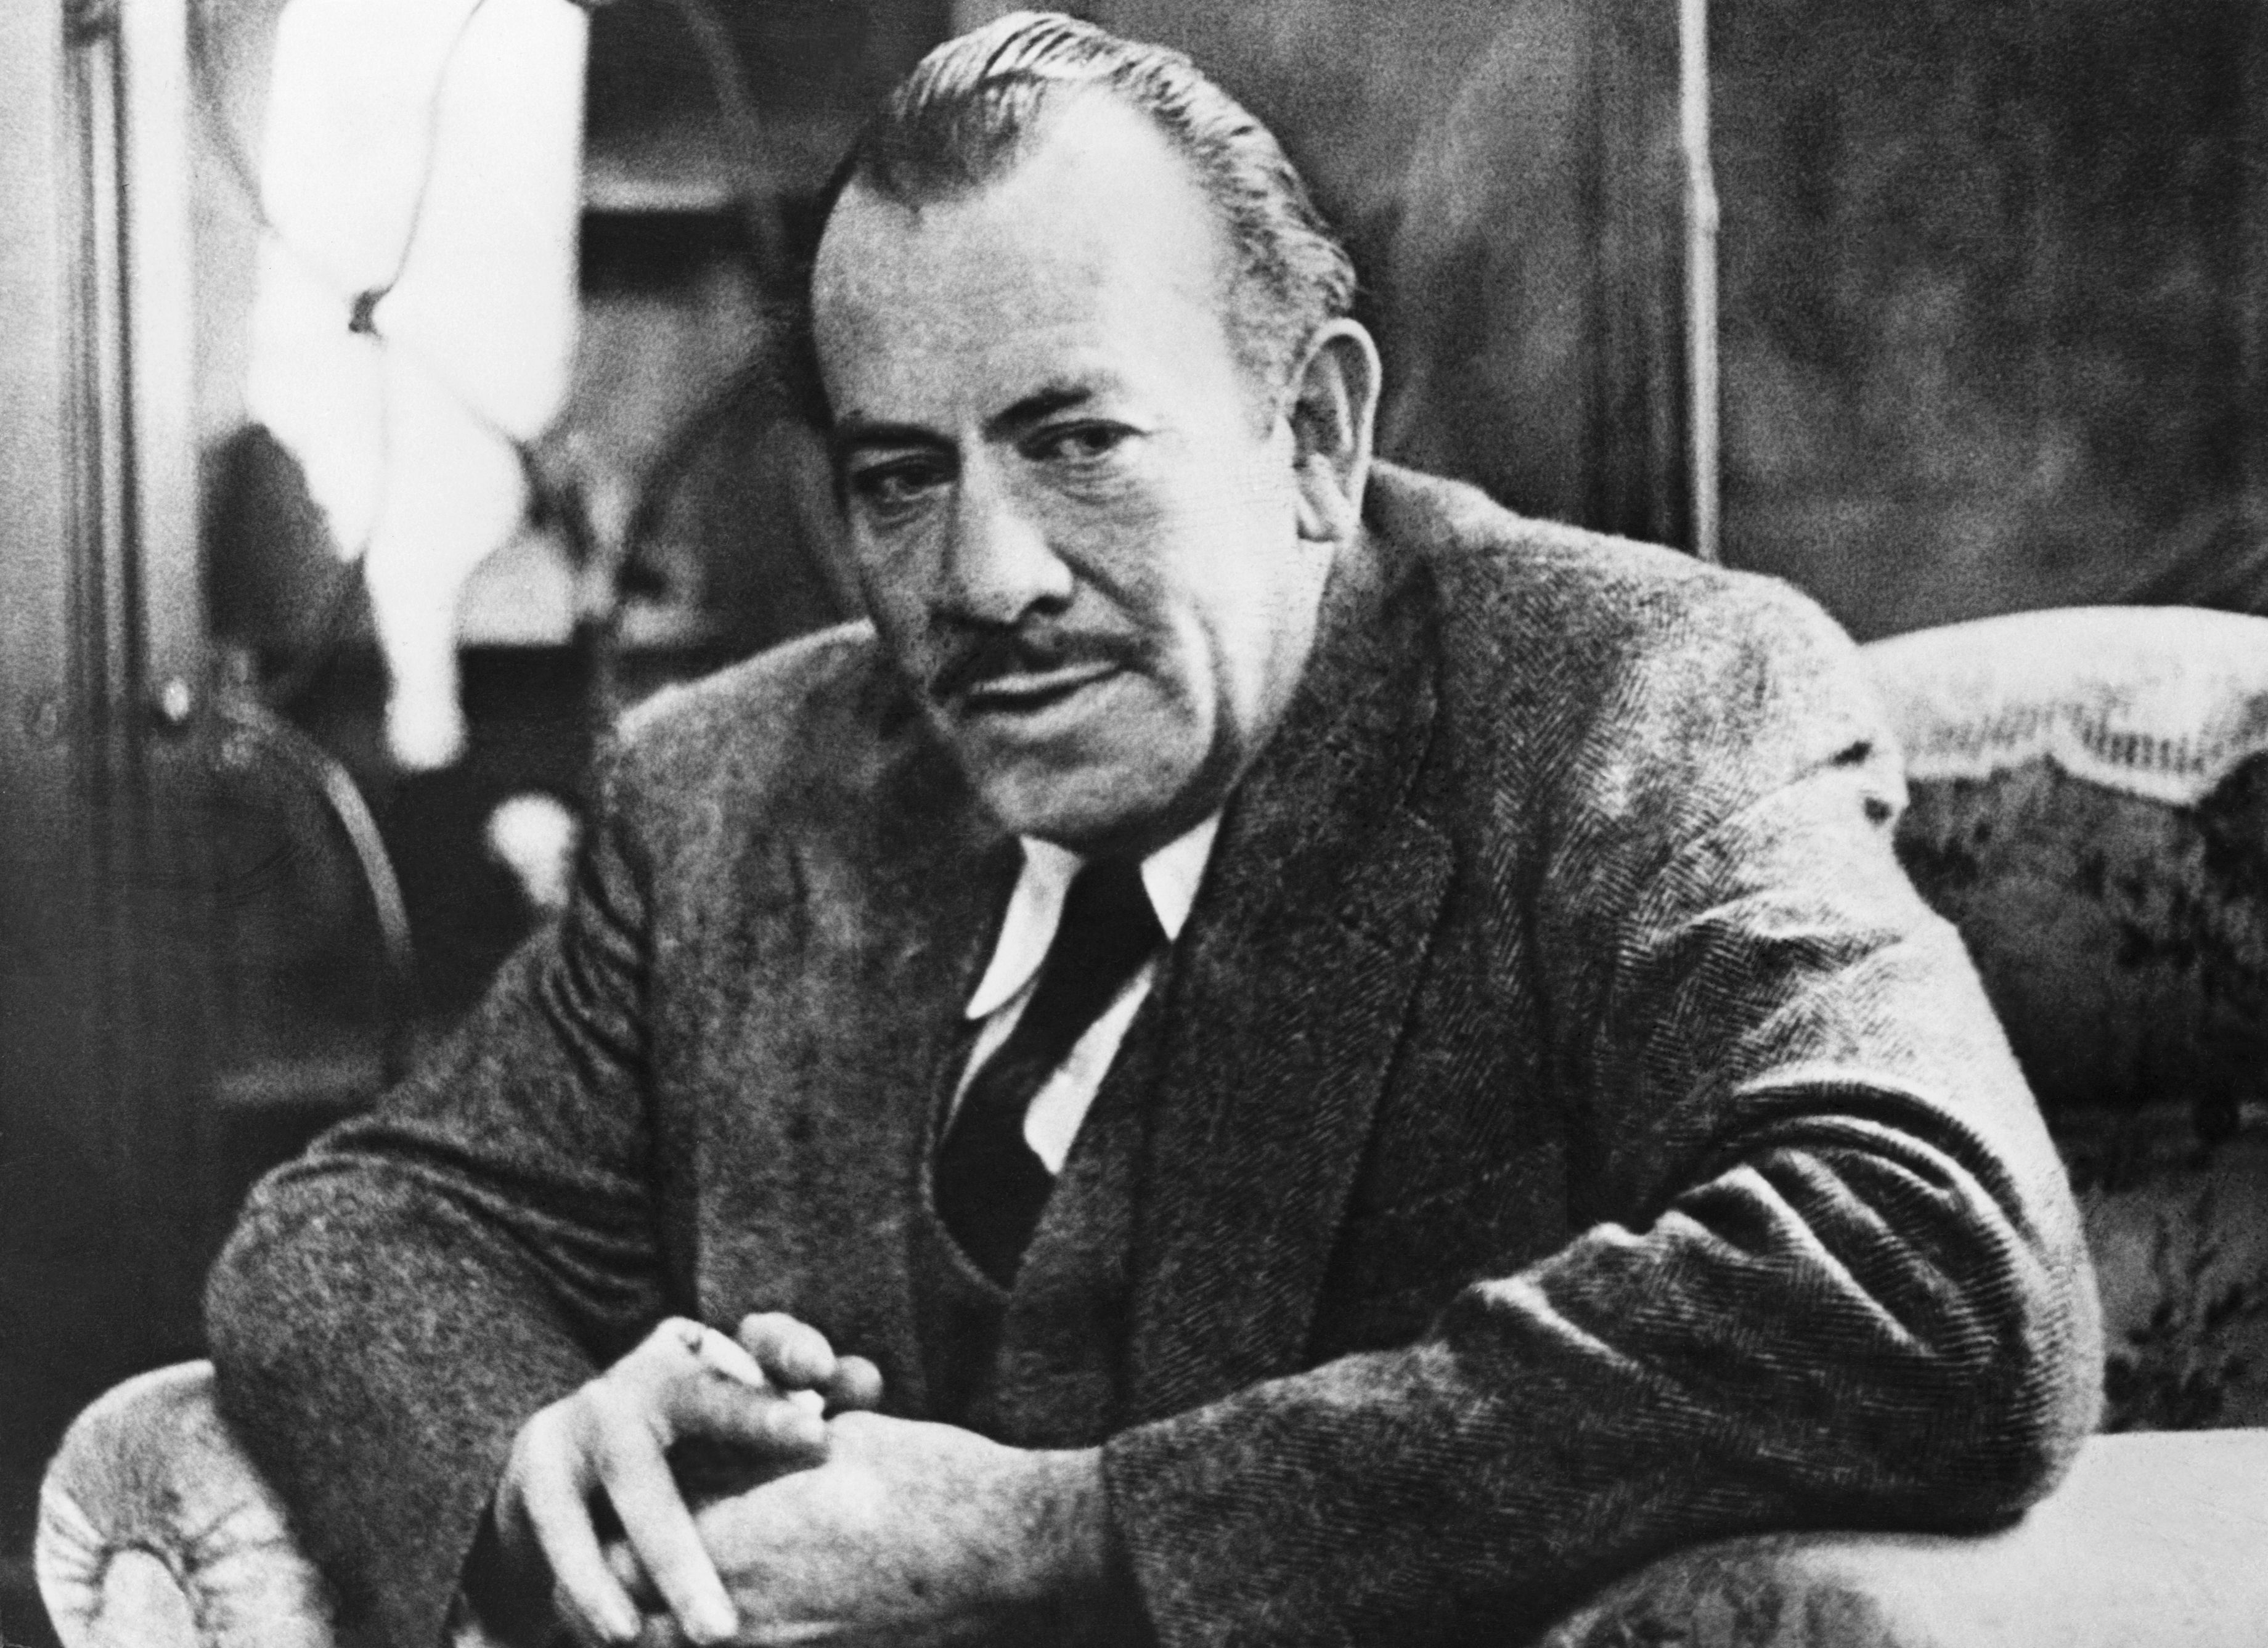 brief biography of john steinbeck A solid and brief overview is paul mccarthy, john steinbeck (1980) a more extended analysis is louis owens, john steinbeck's re-vision of america (1985) essential for an understanding of the steinbeck/ricketts relationship is richard astro, john steinbeck and edward f ricketts: the shaping of a novelist (1973), and essays in steinbeck and.